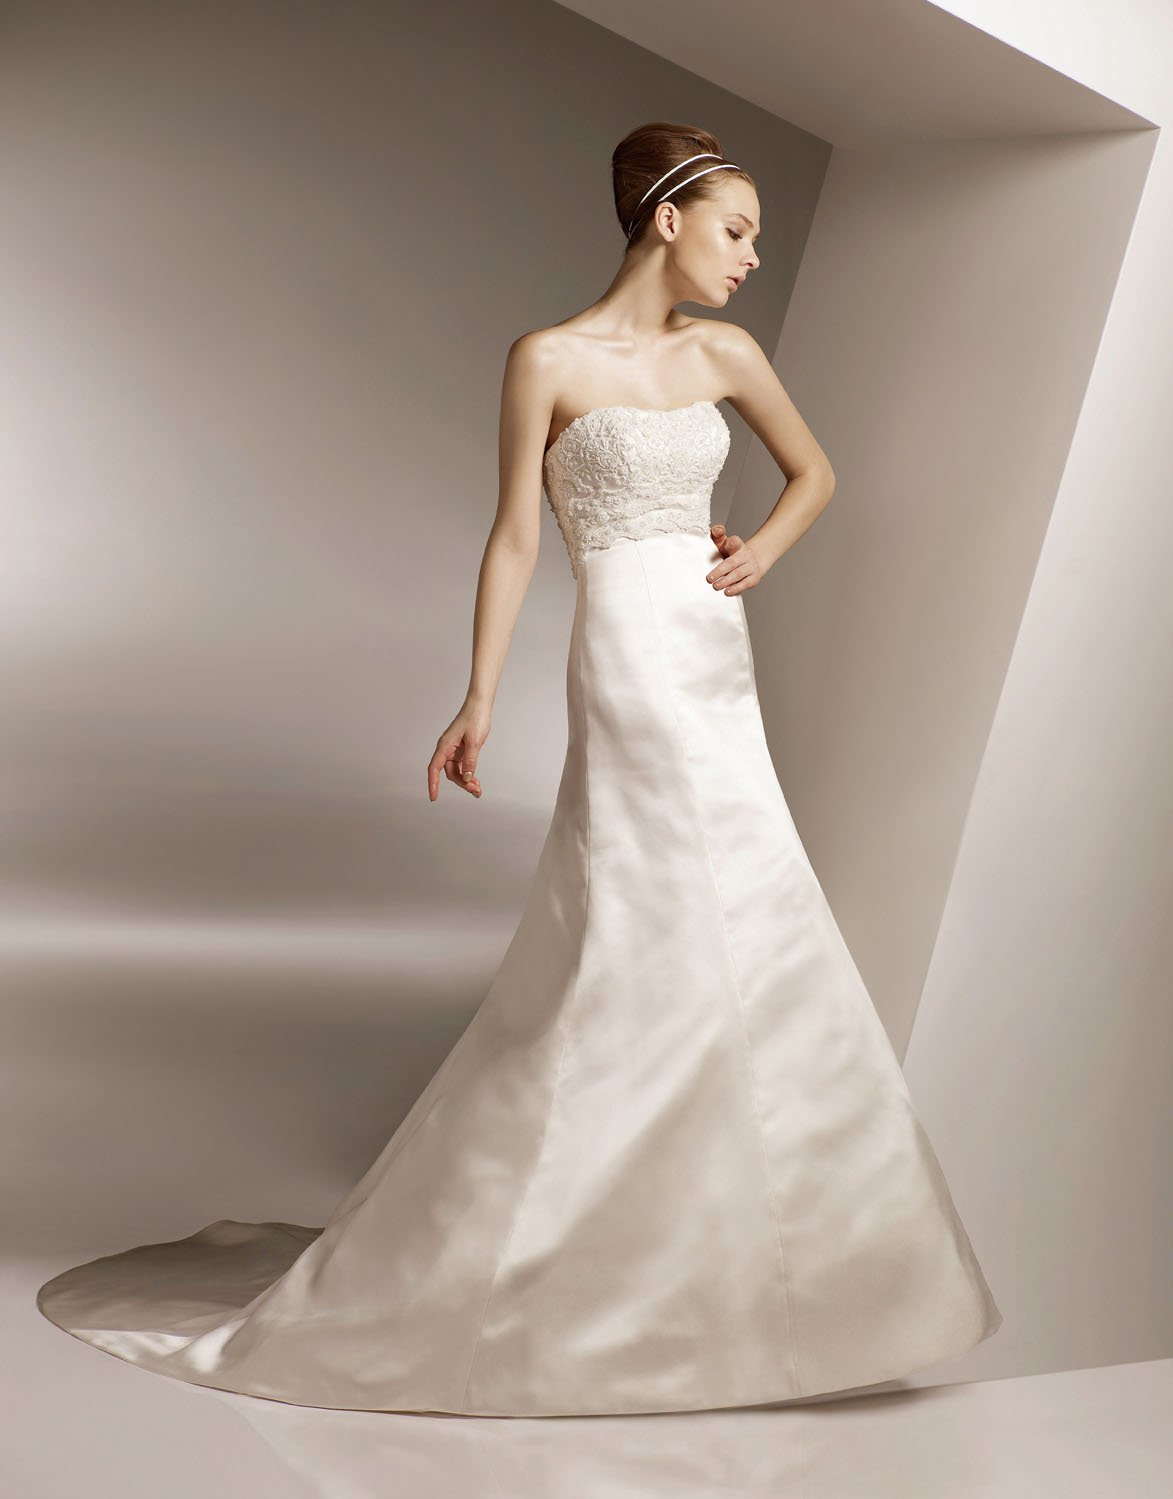 Scoop Neckline Strapless Appliqued Beading Taffeta Wedding Dress Bridal Gown